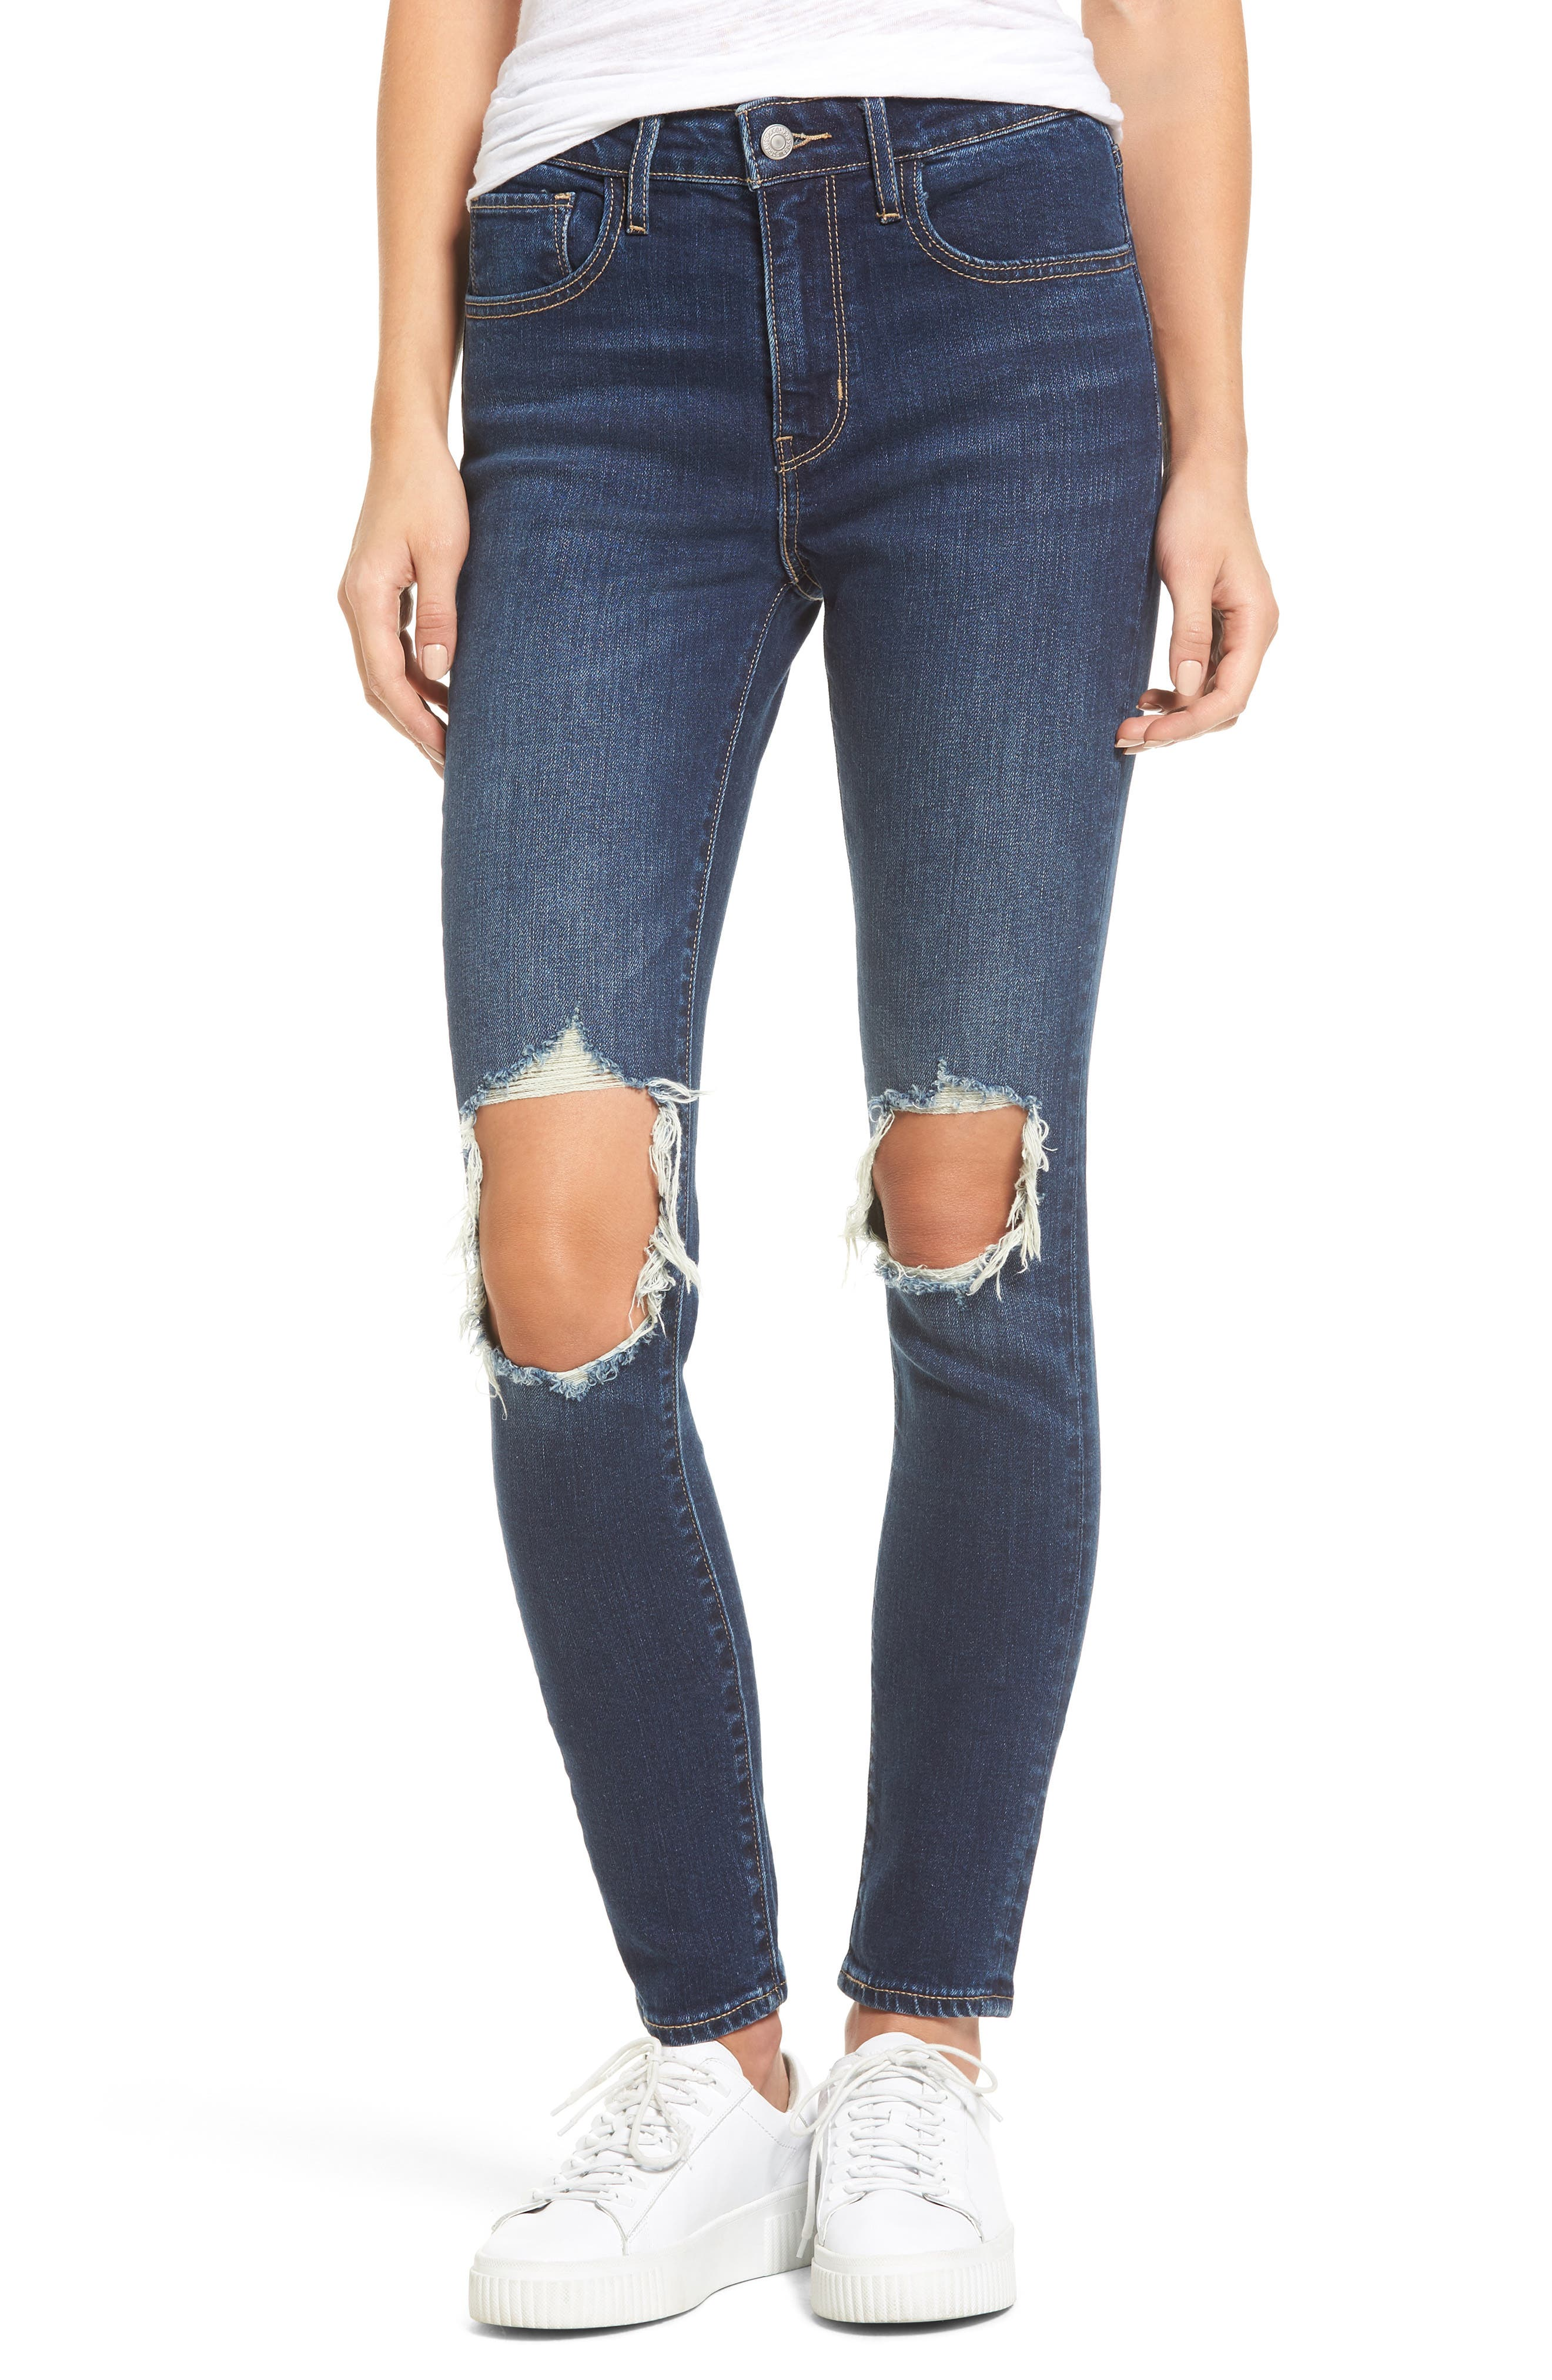 721 Ripped High Waist Skinny Jeans,                             Main thumbnail 1, color,                             420